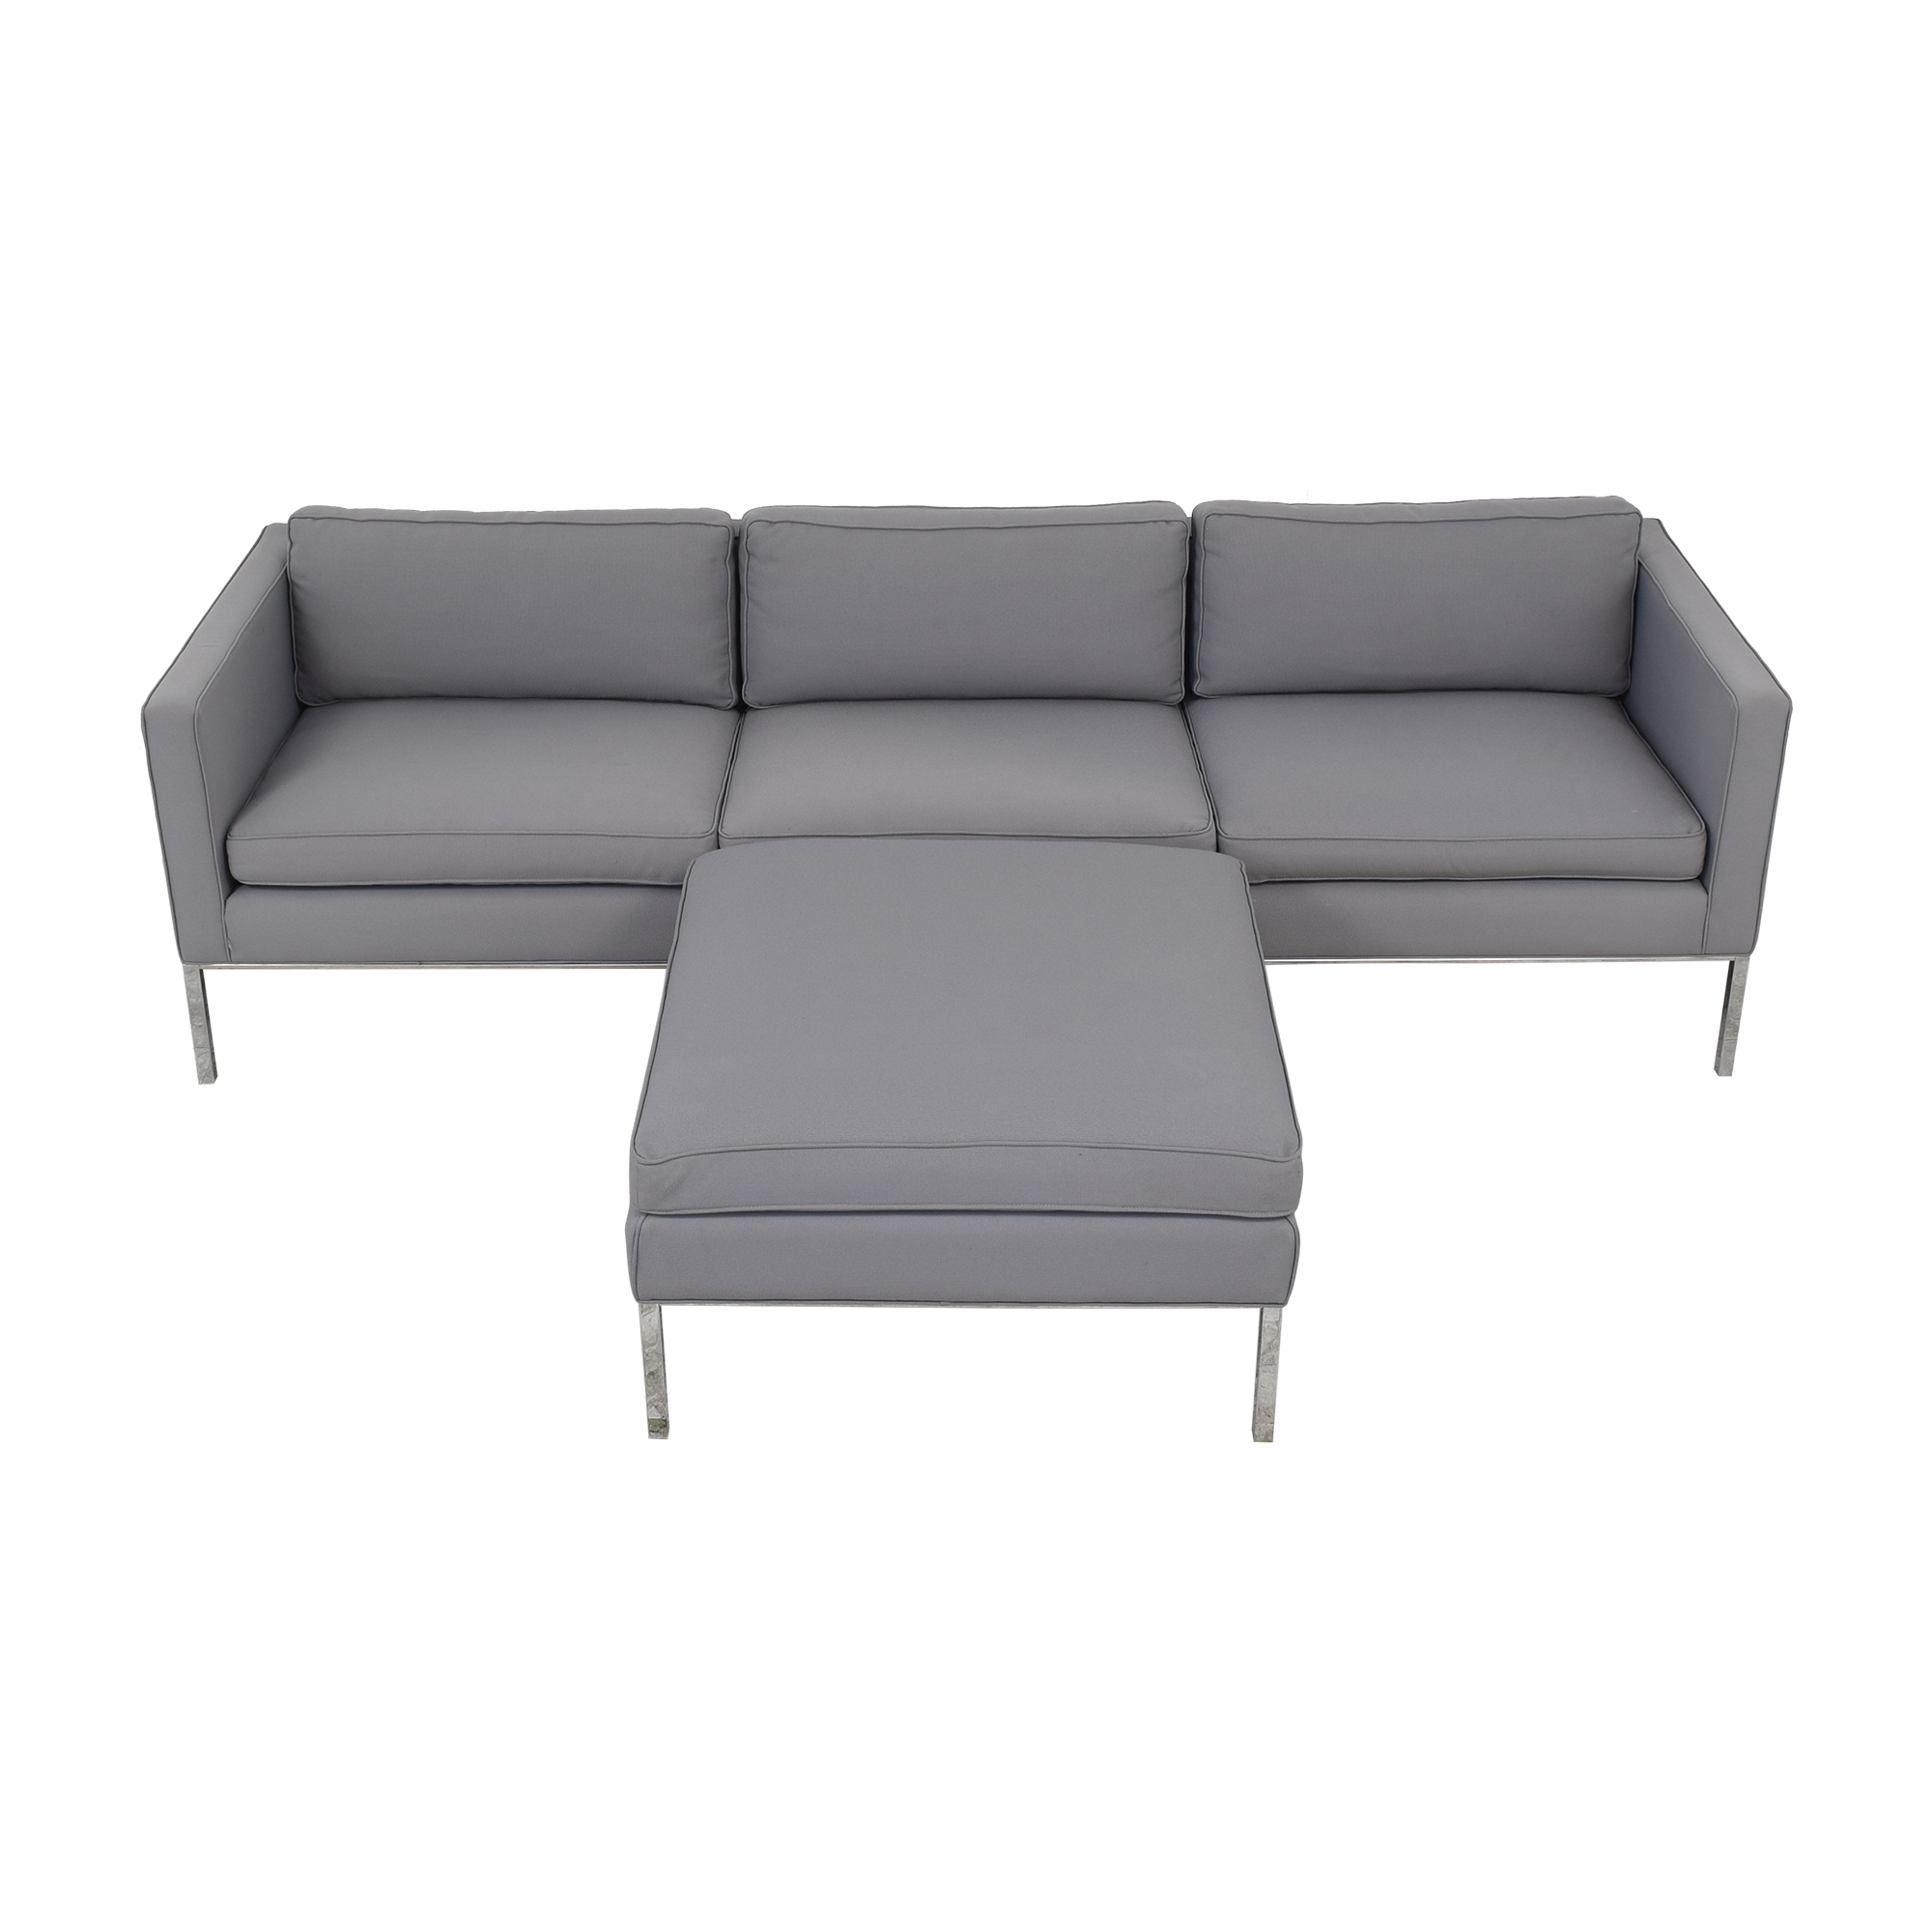 Artifort Artifort 905 3 Seater Sofa with 905 Ottoman dimensions